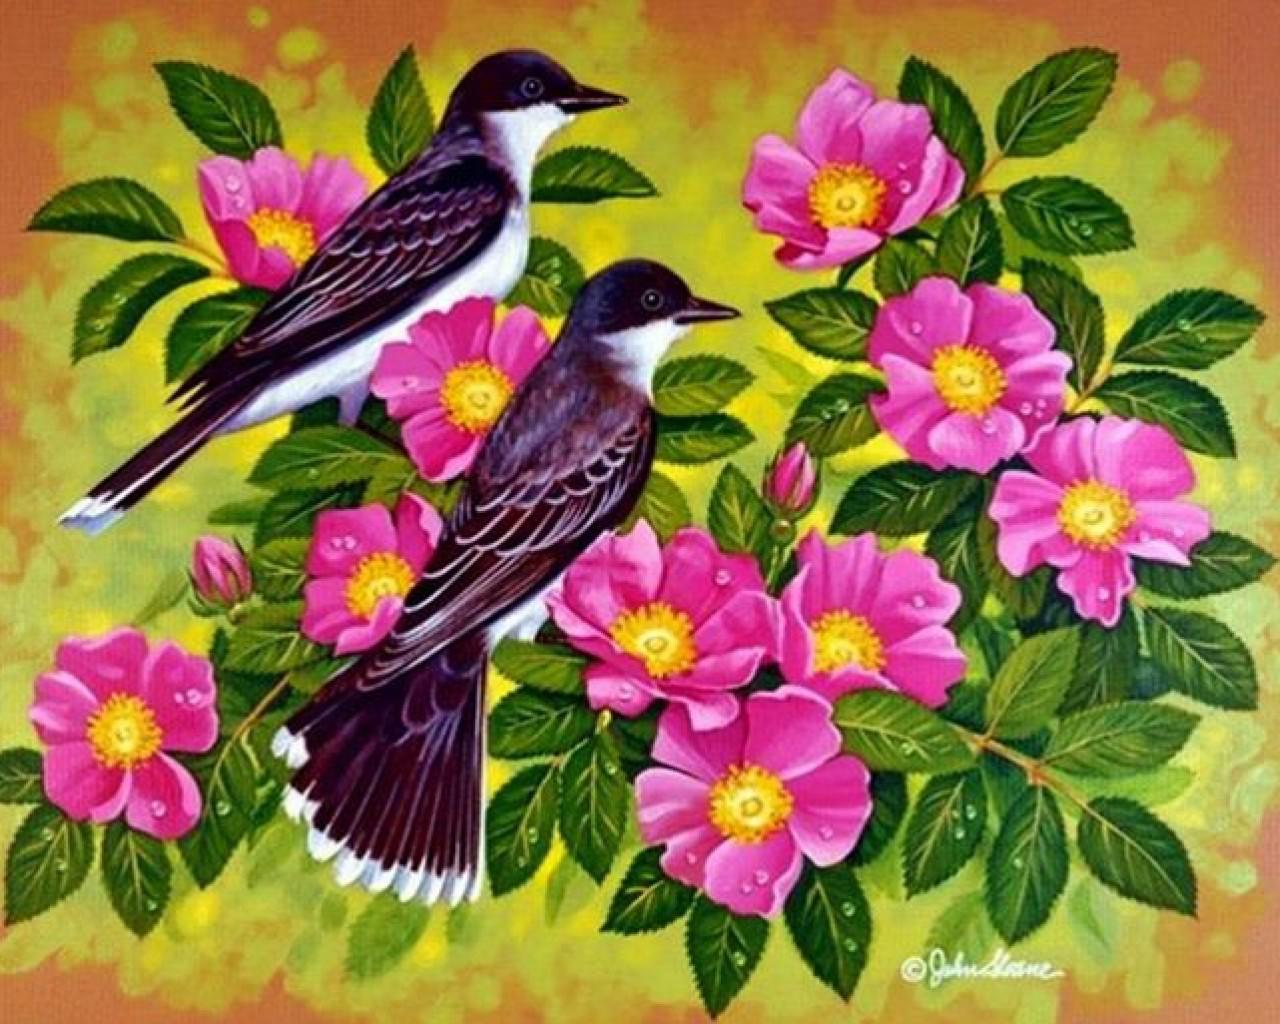 birds and flowers   129698   High Quality and Resolution Wallpapers 1280x1024